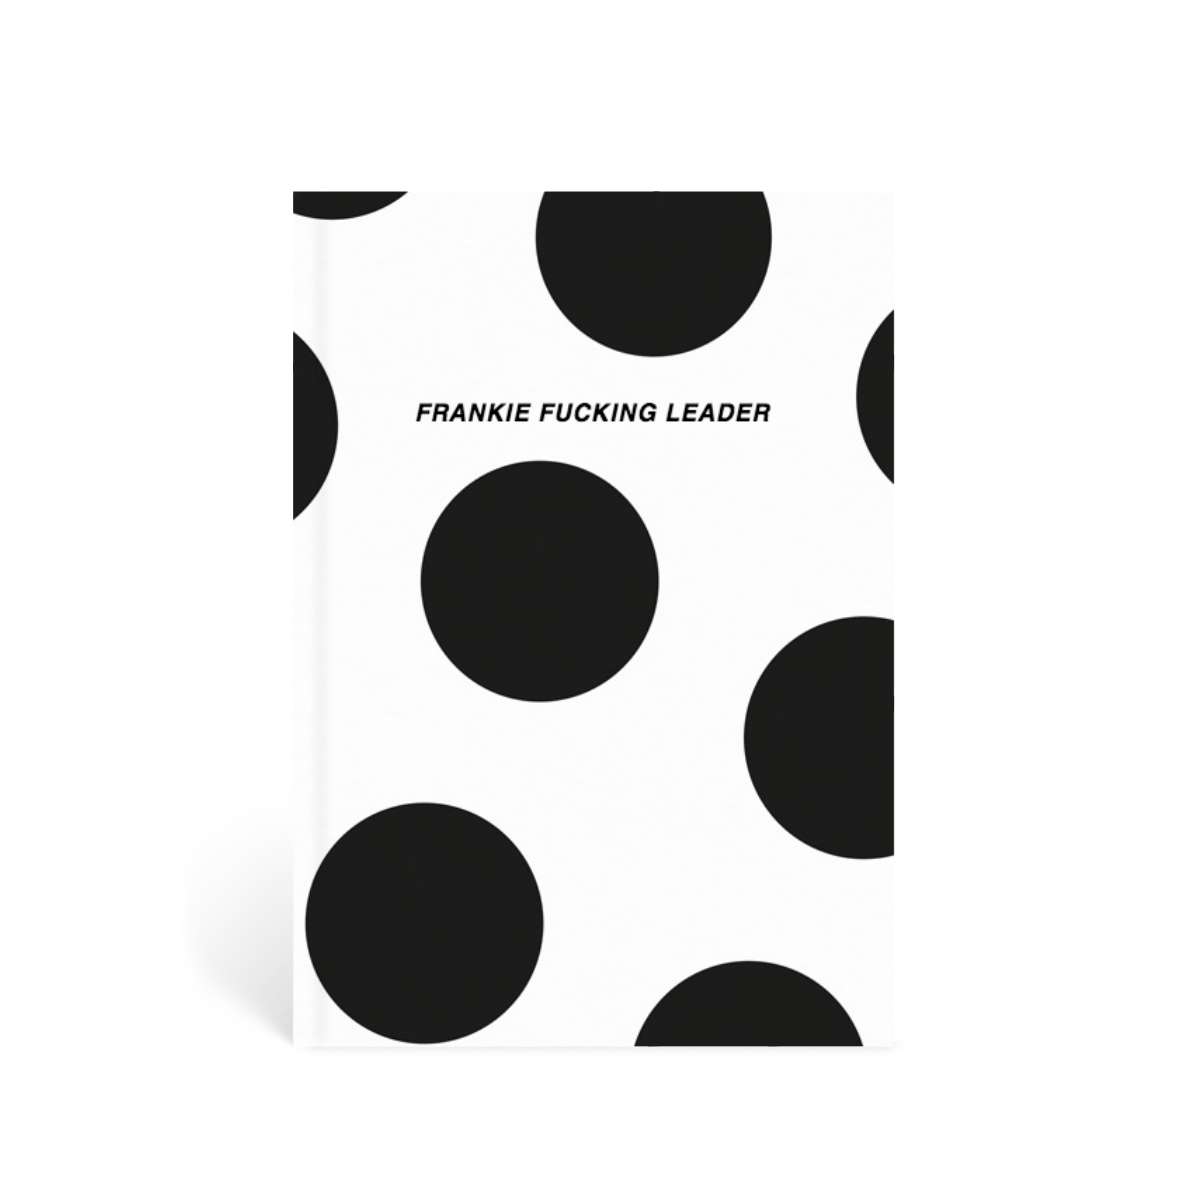 Https%3a%2f%2fwww.papier.com%2fproduct image%2f47728%2f25%2ff king polka dots 11708 front 1538133712.png?ixlib=rb 1.1